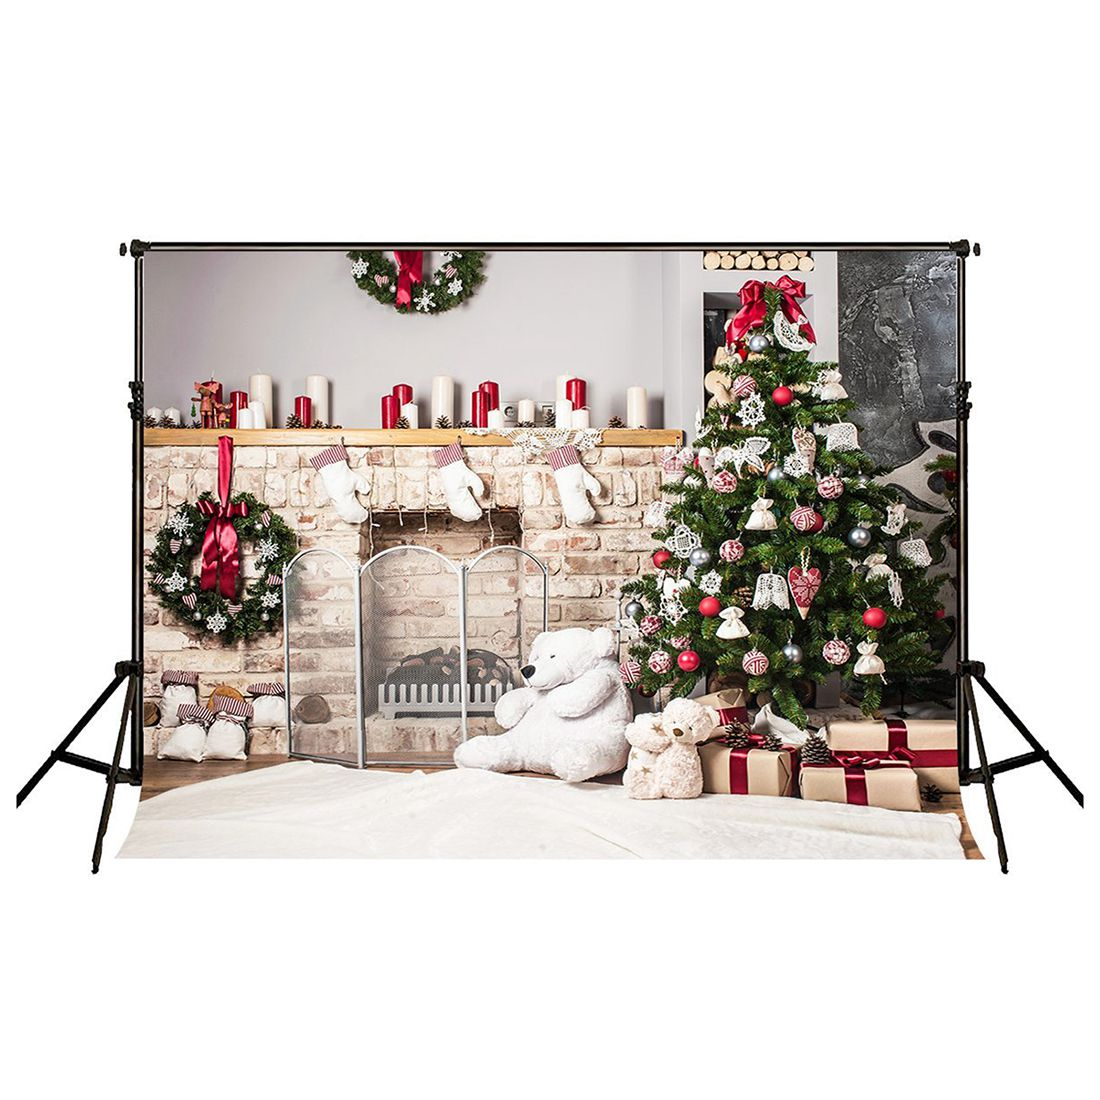 7x5ft Christmas Tree Backdrop Photography Brick Fireplace for Newborn Christmas Photo Studio Background christmas snow vinyl studio backdrop photography photo background 7x5ft